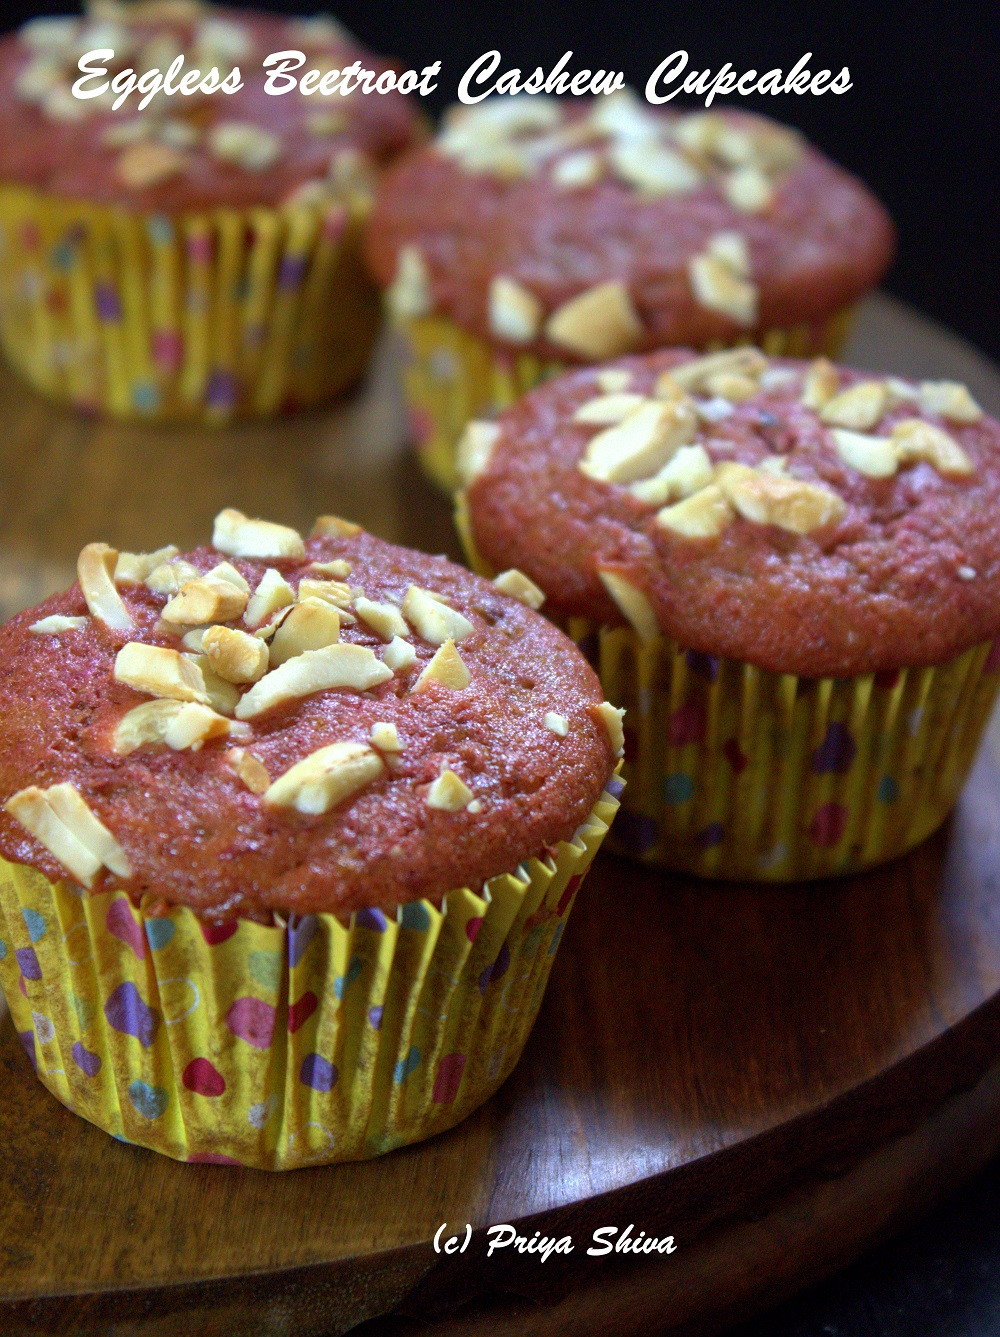 eggless beetroot cashew cupcakes